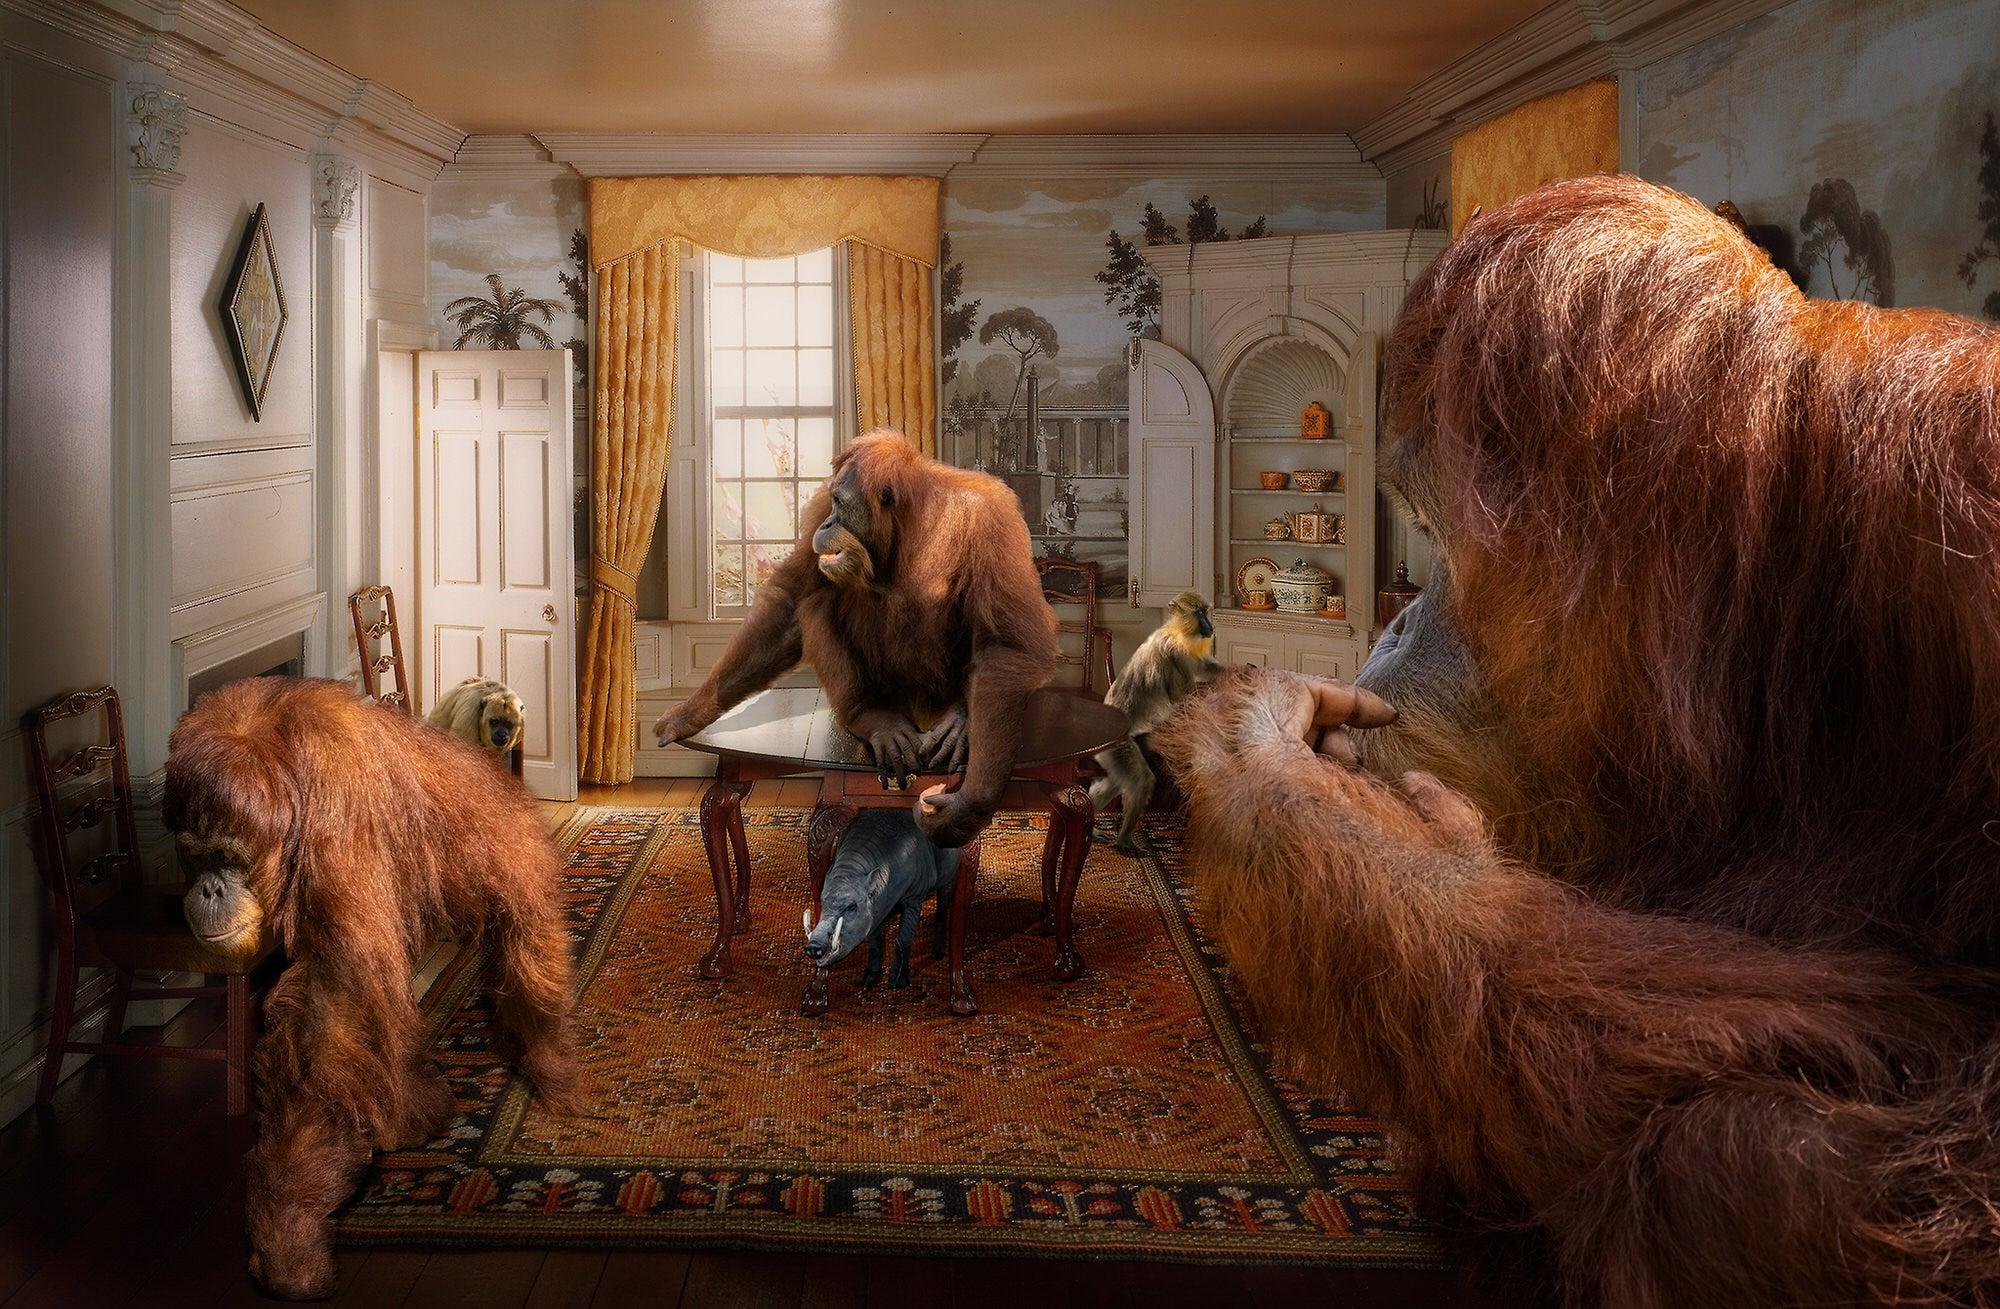 Alpha-Universe-photo-by-Lisa-Frank--Orangutan_-New-Hampshire-Dining-Room-1760.SkebFmTJhw.jpg